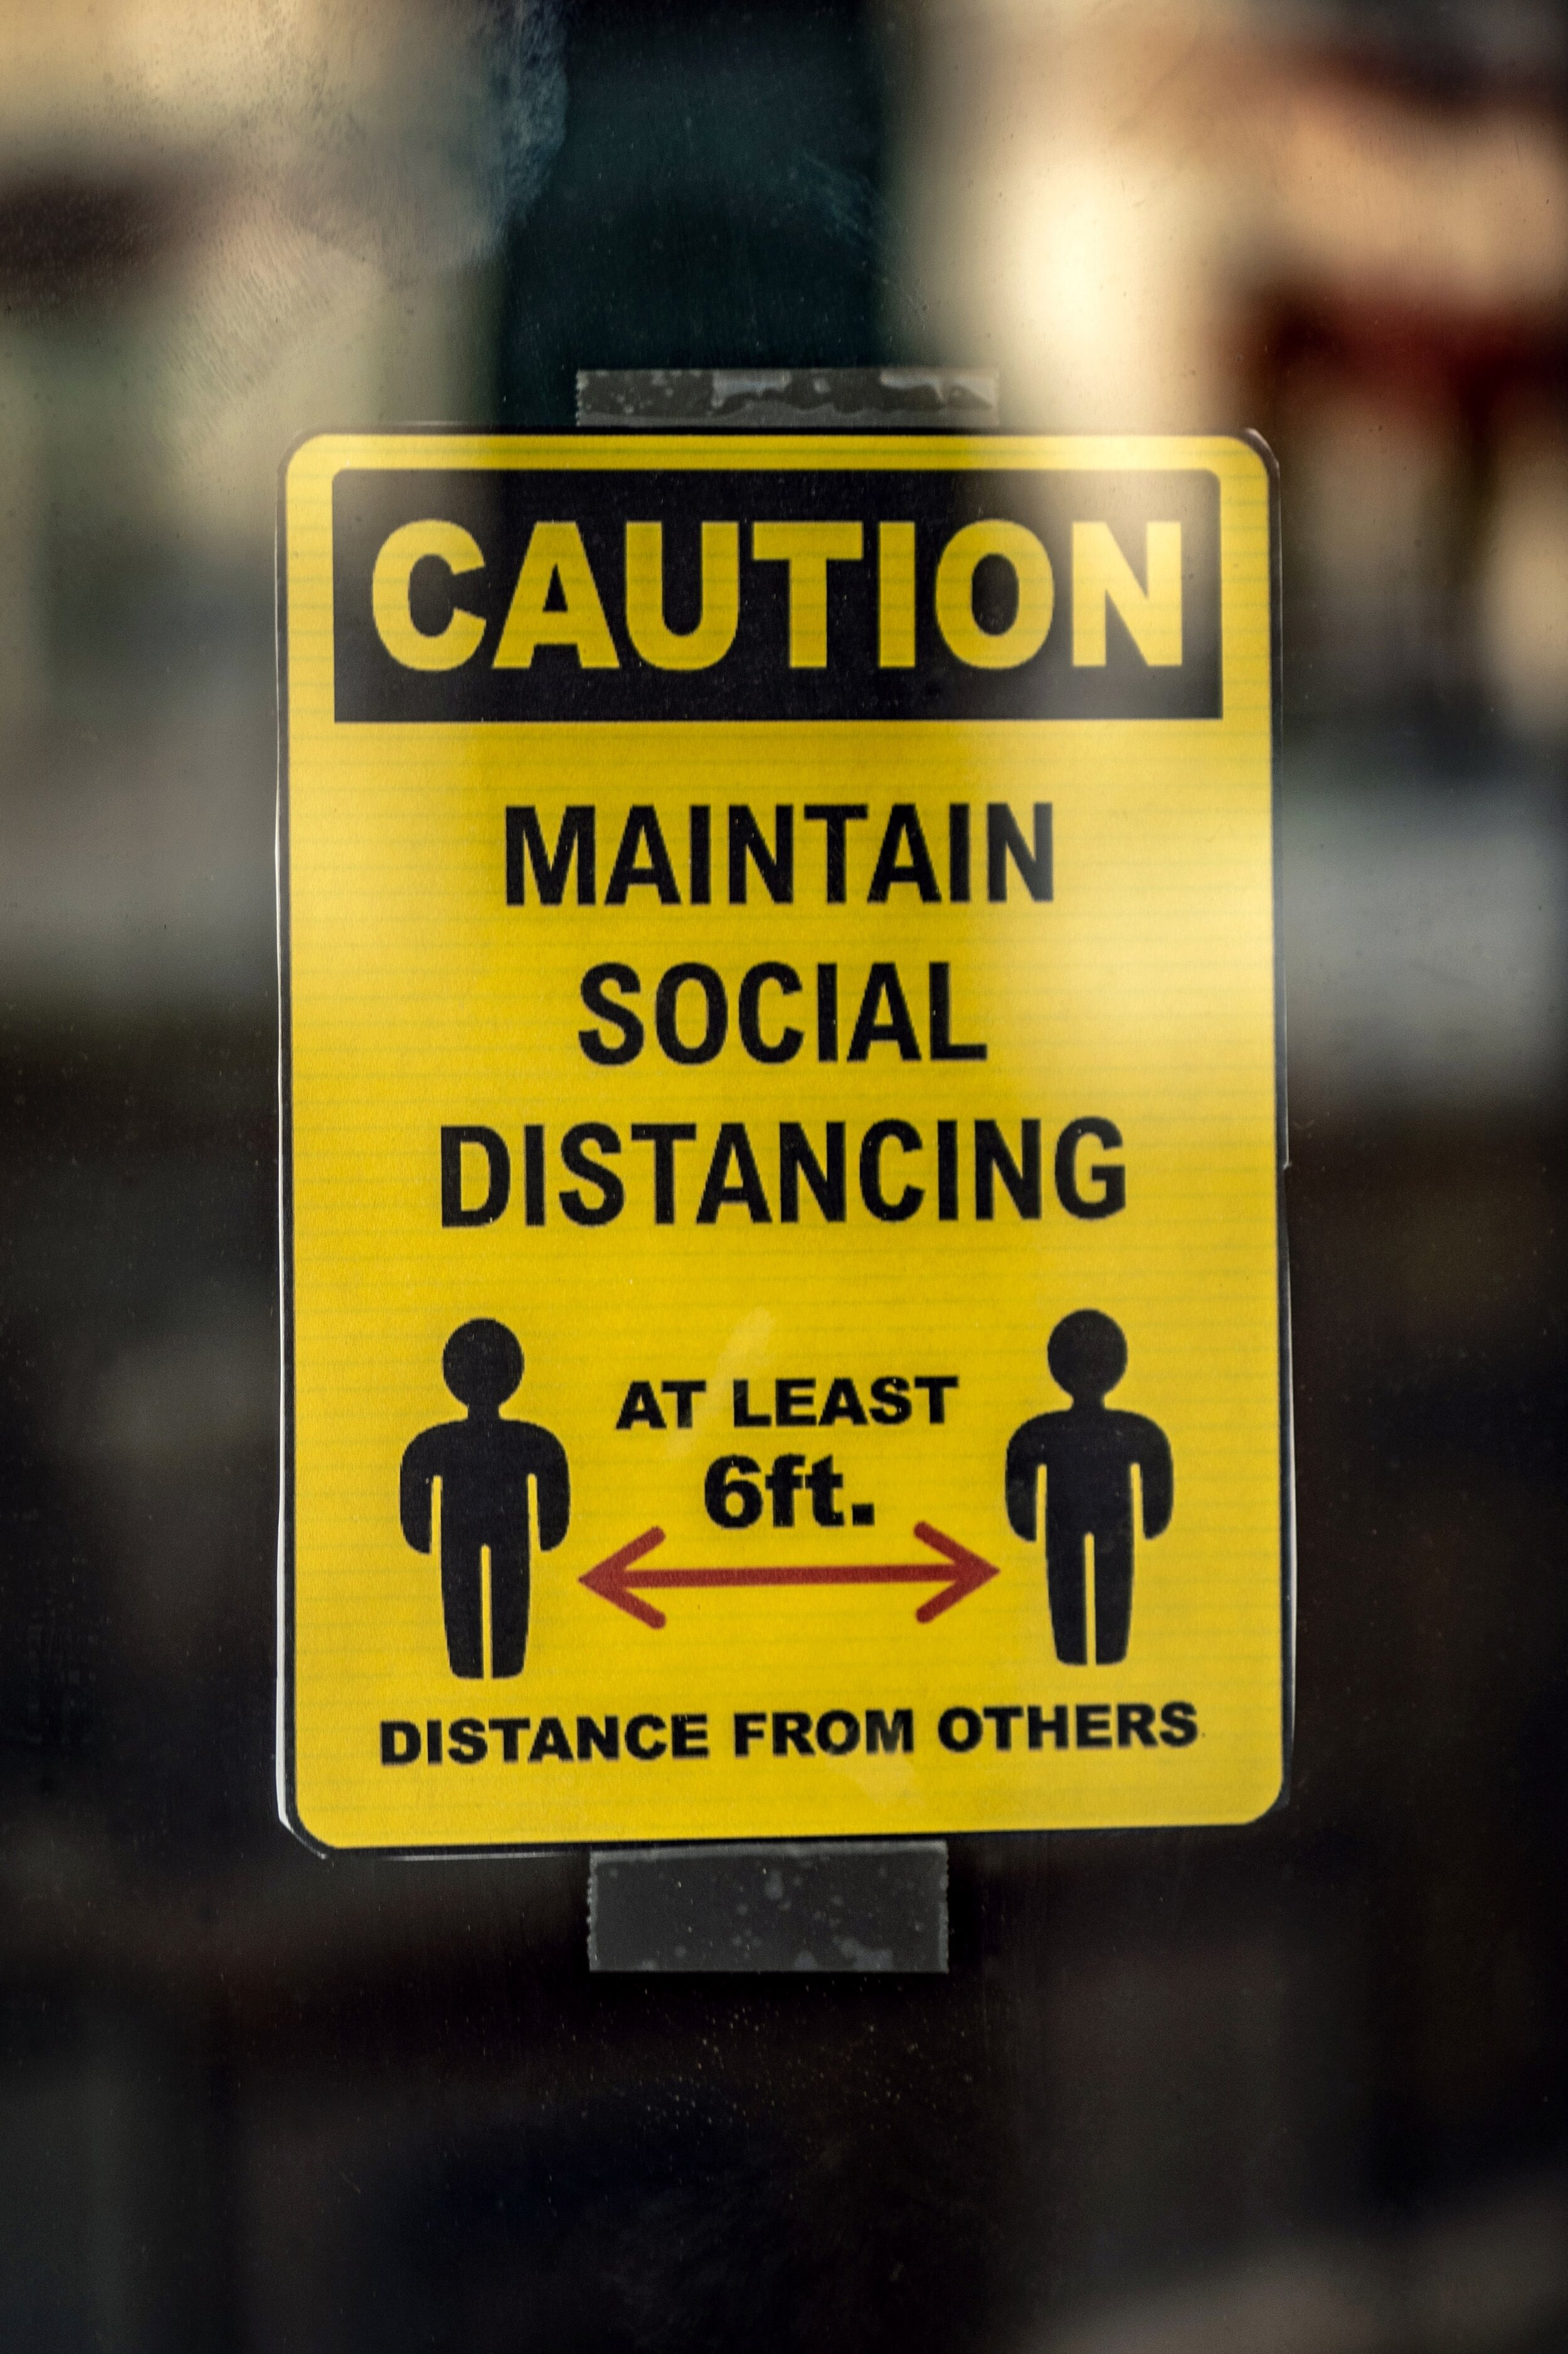 caution sign encouraging social distancing